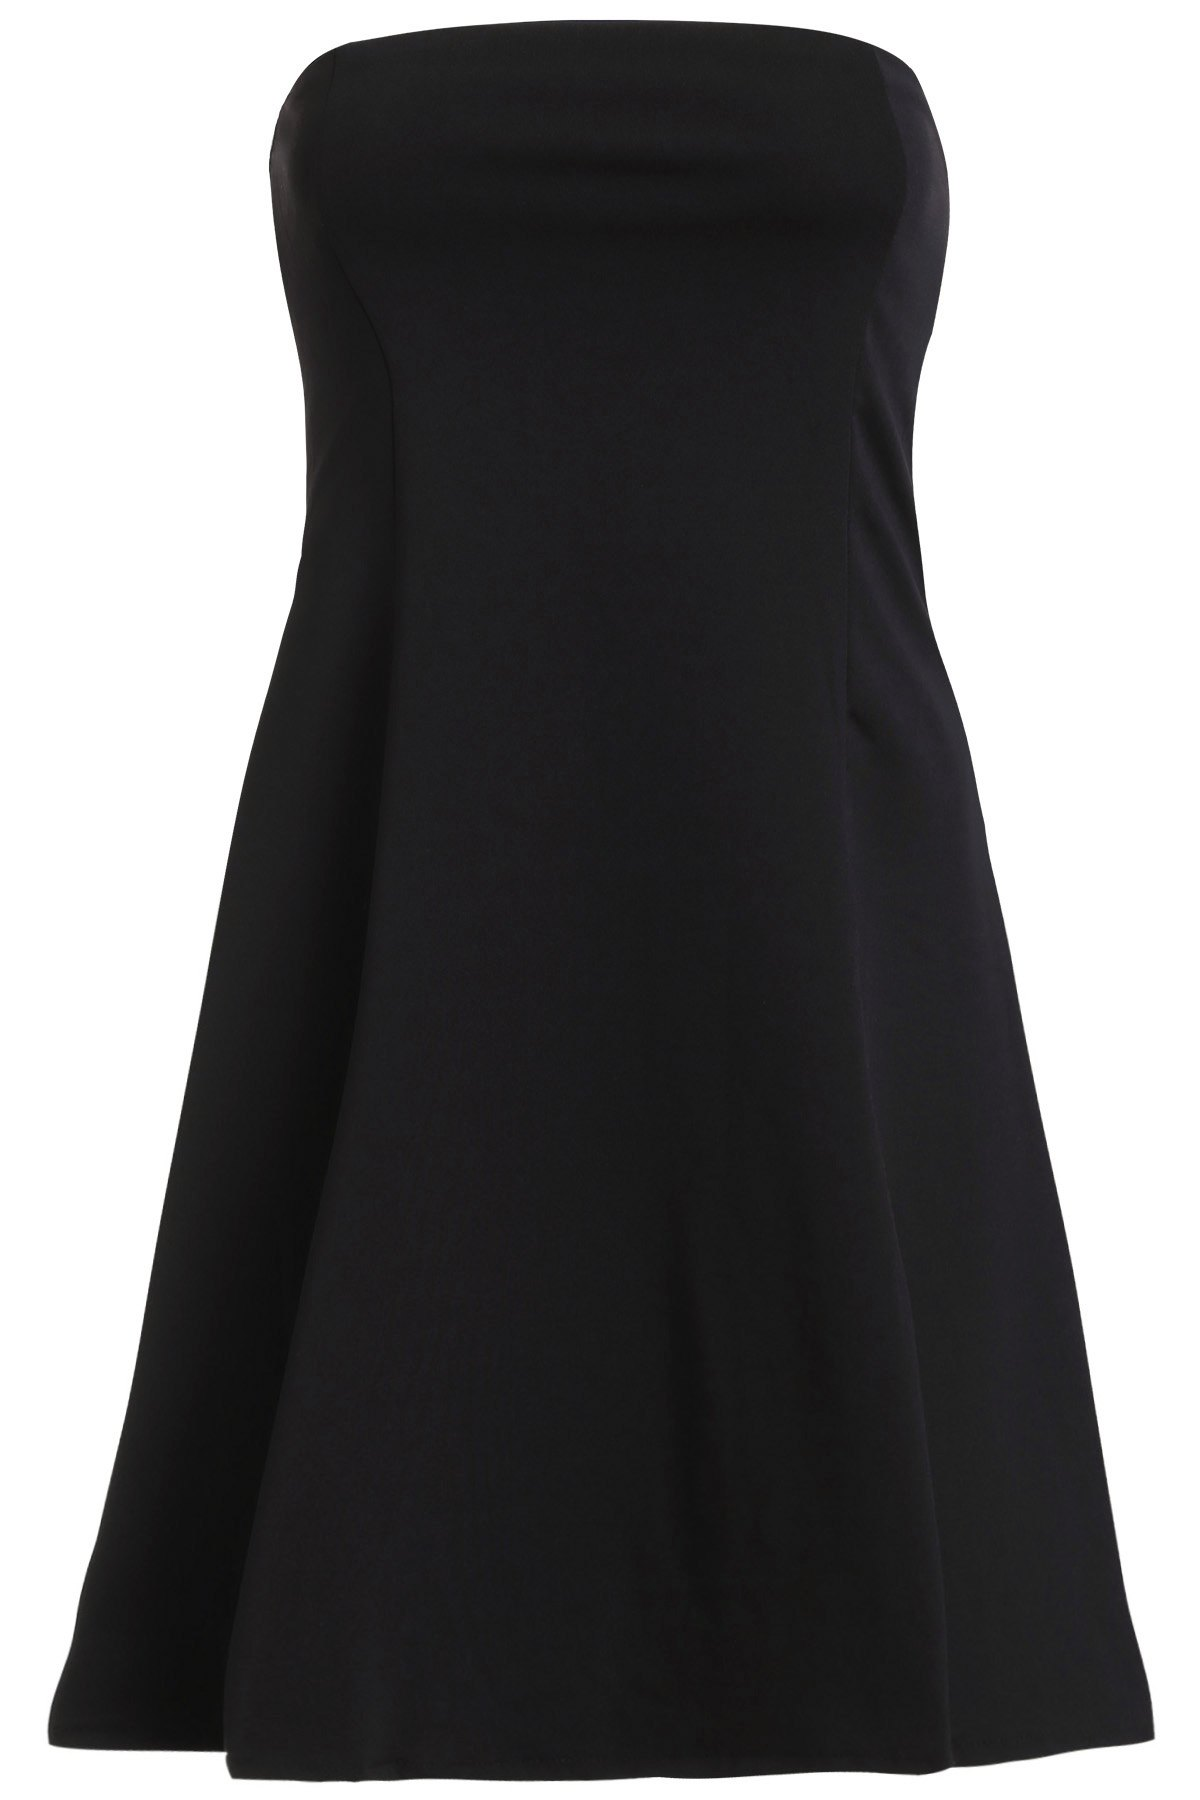 Alluring Women's Strapless A-Line Club Dress - BLACK S